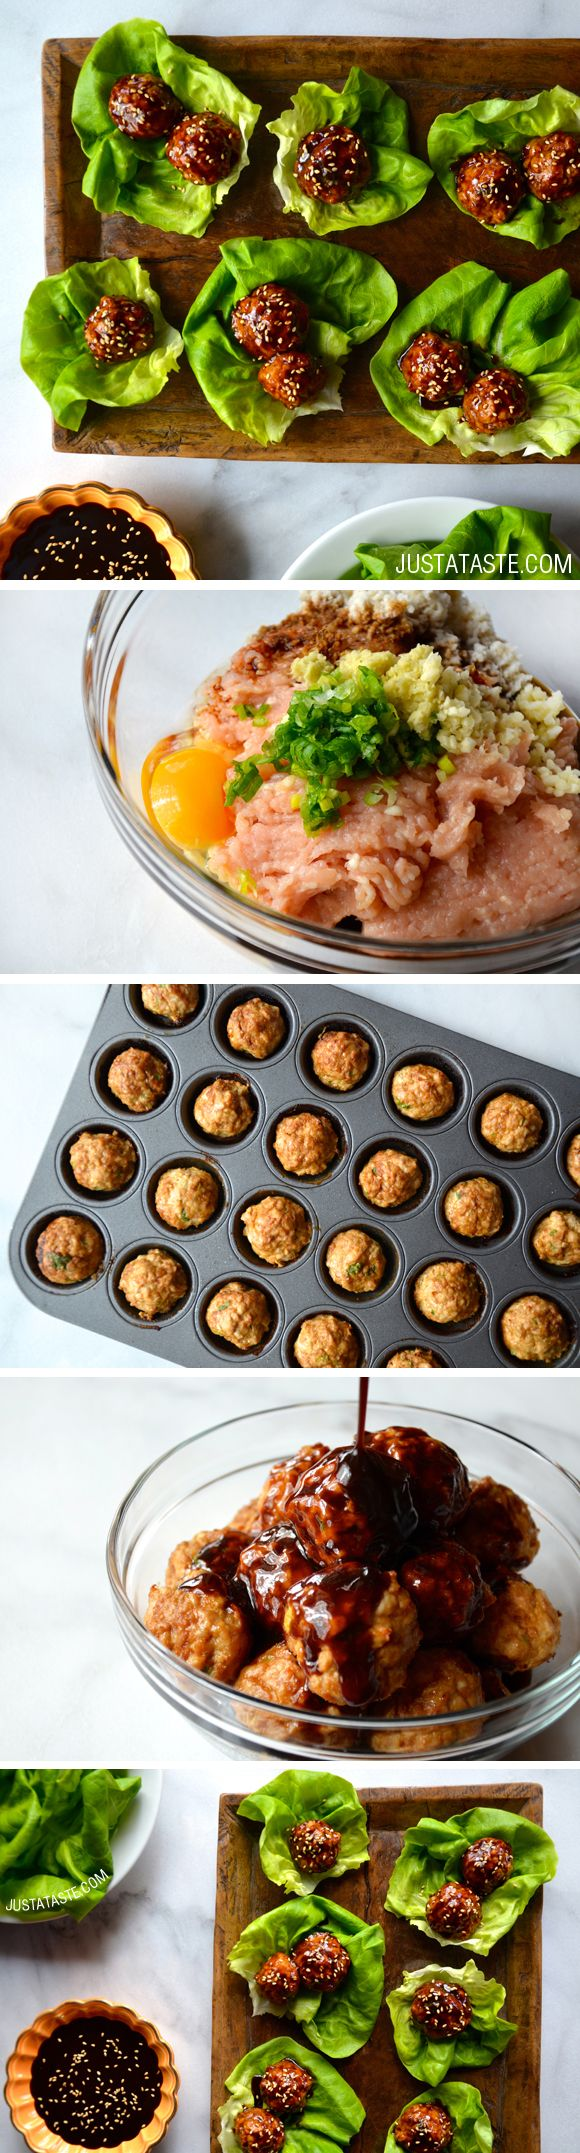 Baked Asian Chicken Meatball Lettuce Wraps #protein #fingerfood